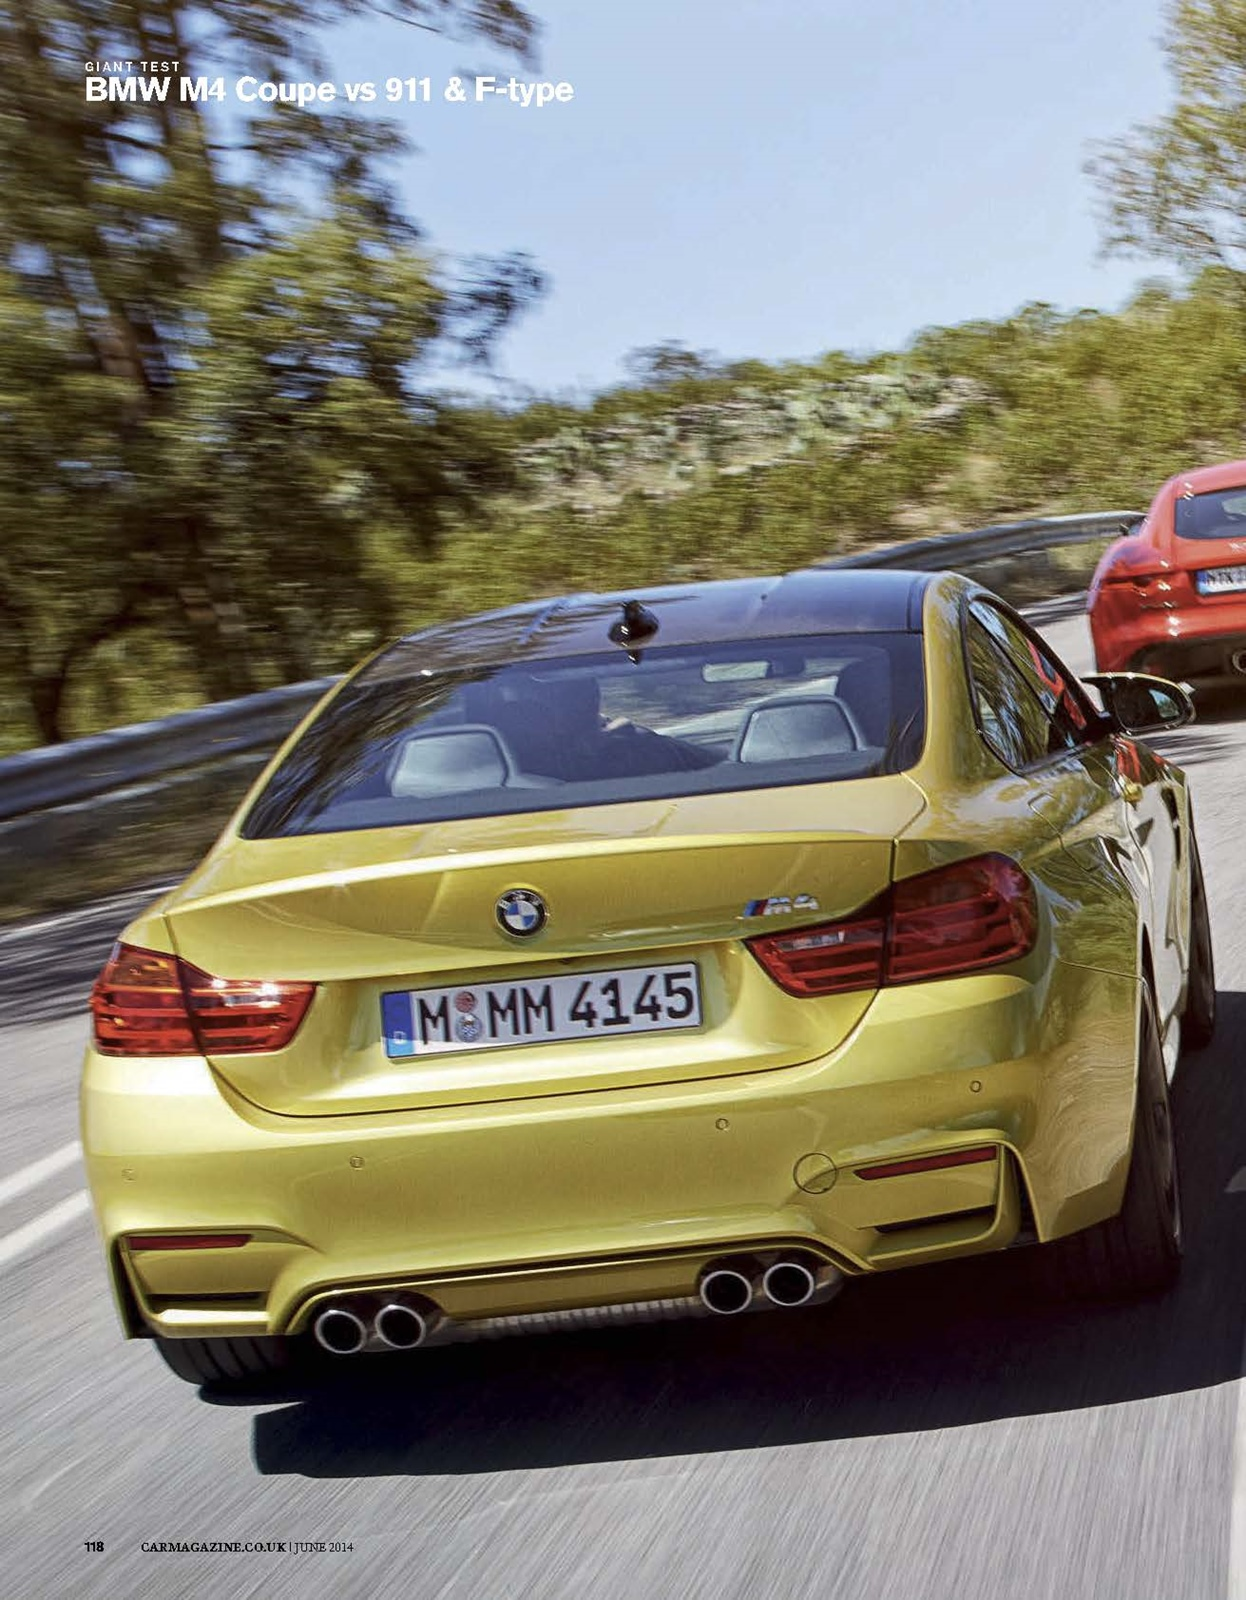 car magazine comparison test: m4 vs 911s vs f-type s (scans)